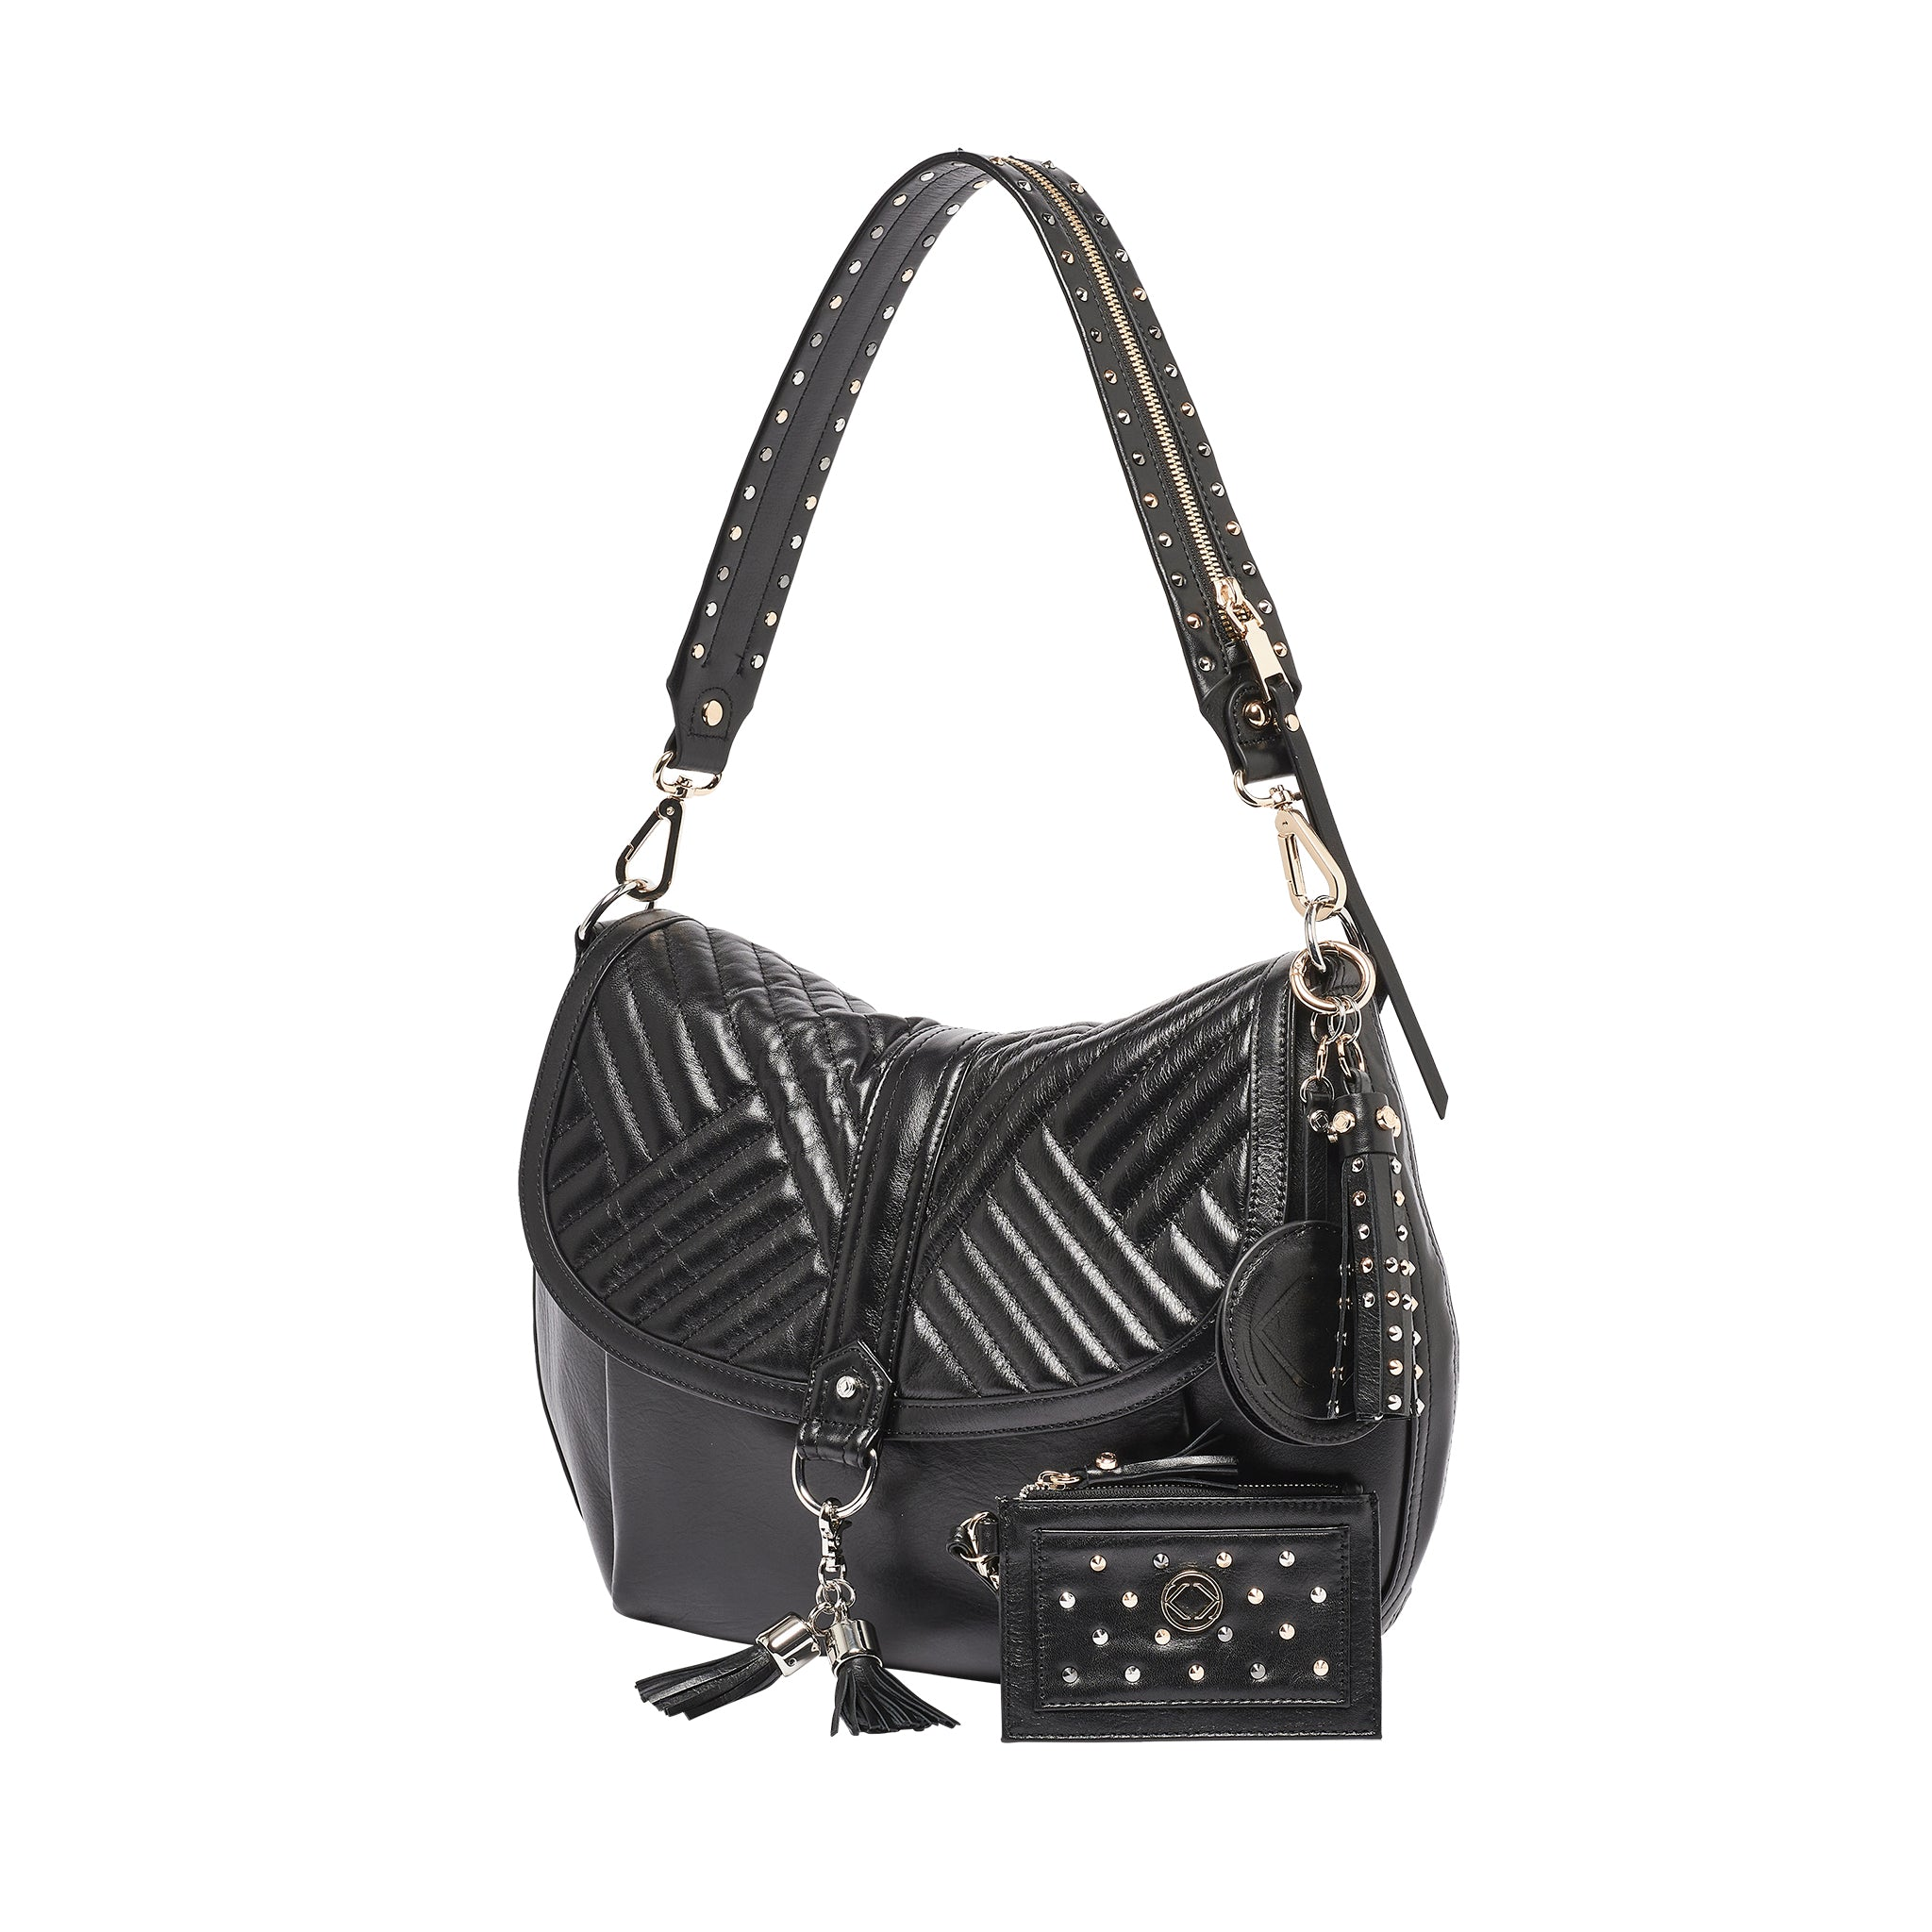 Luxury designer Jones quilted black leather organiser crossbody changing bag with our luxurious Gretchen studded strap